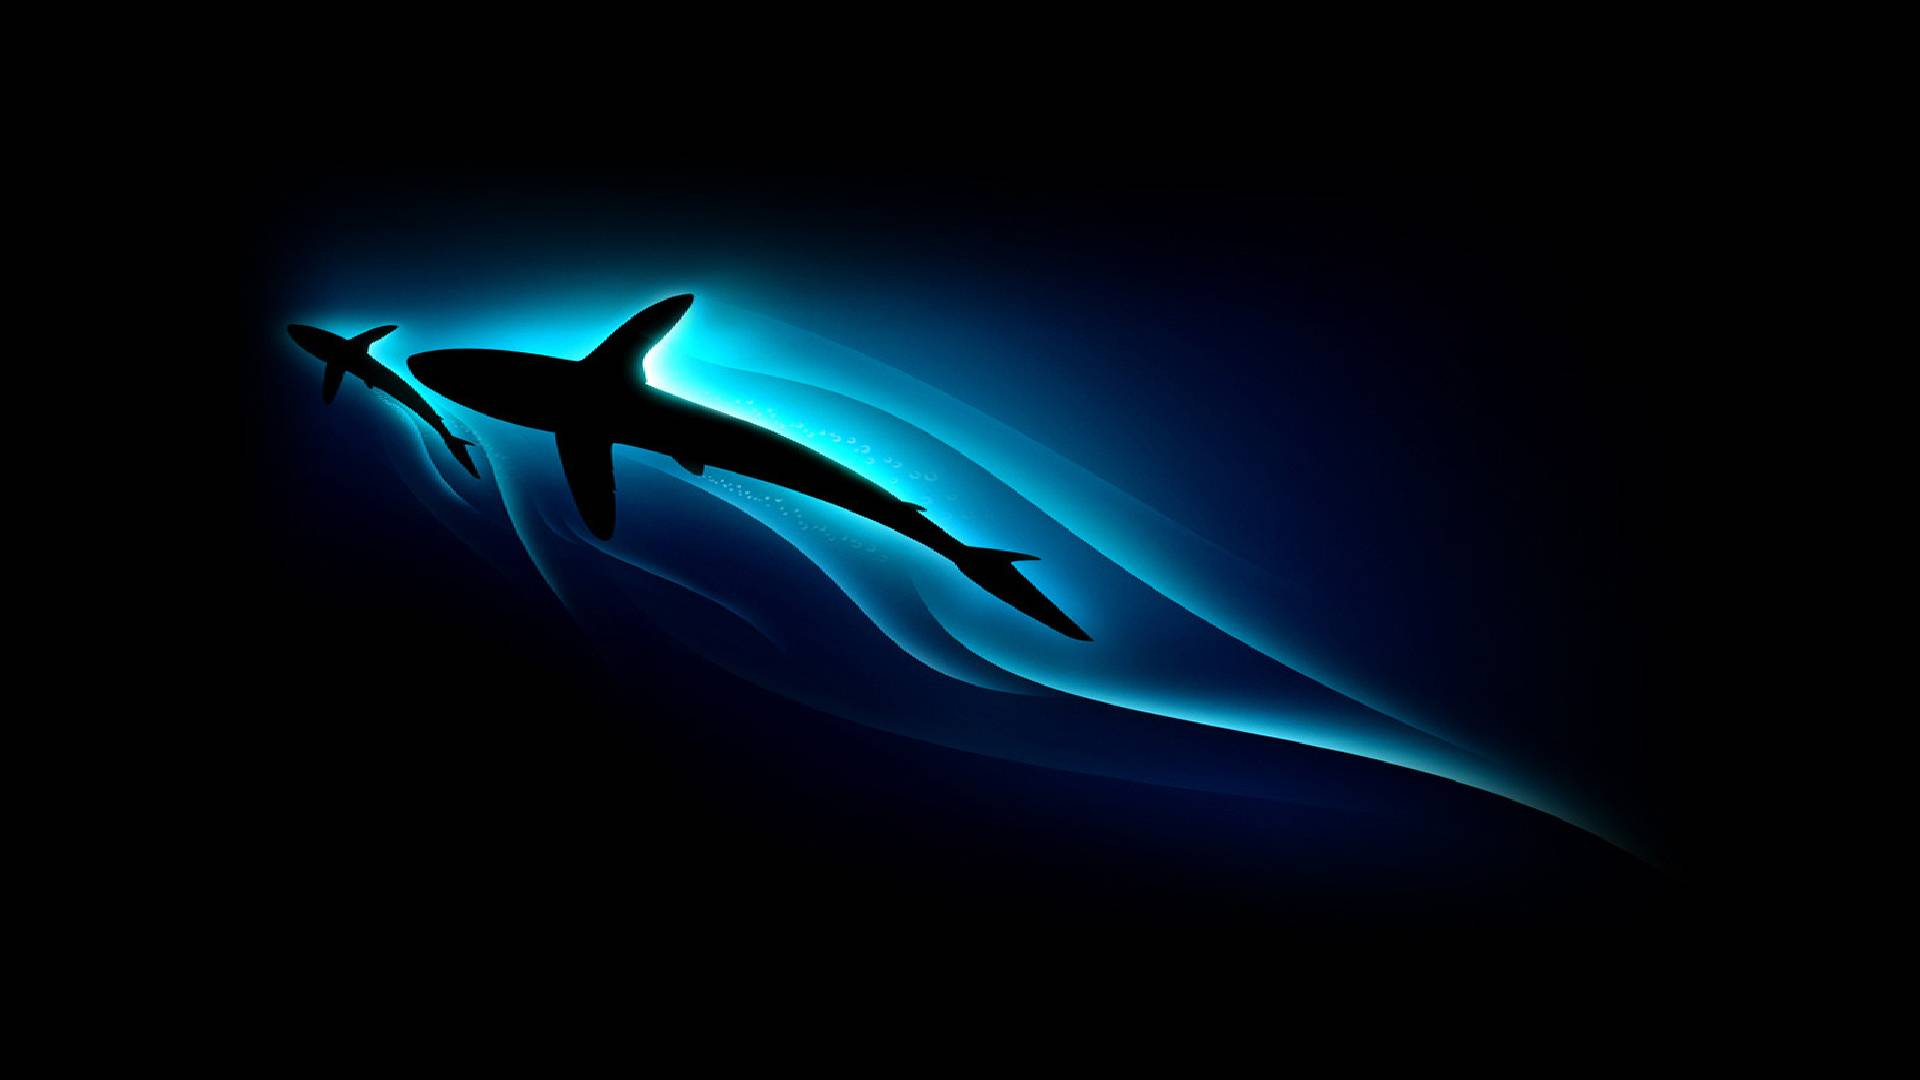 cool wallpapers hd - wallpapersafari